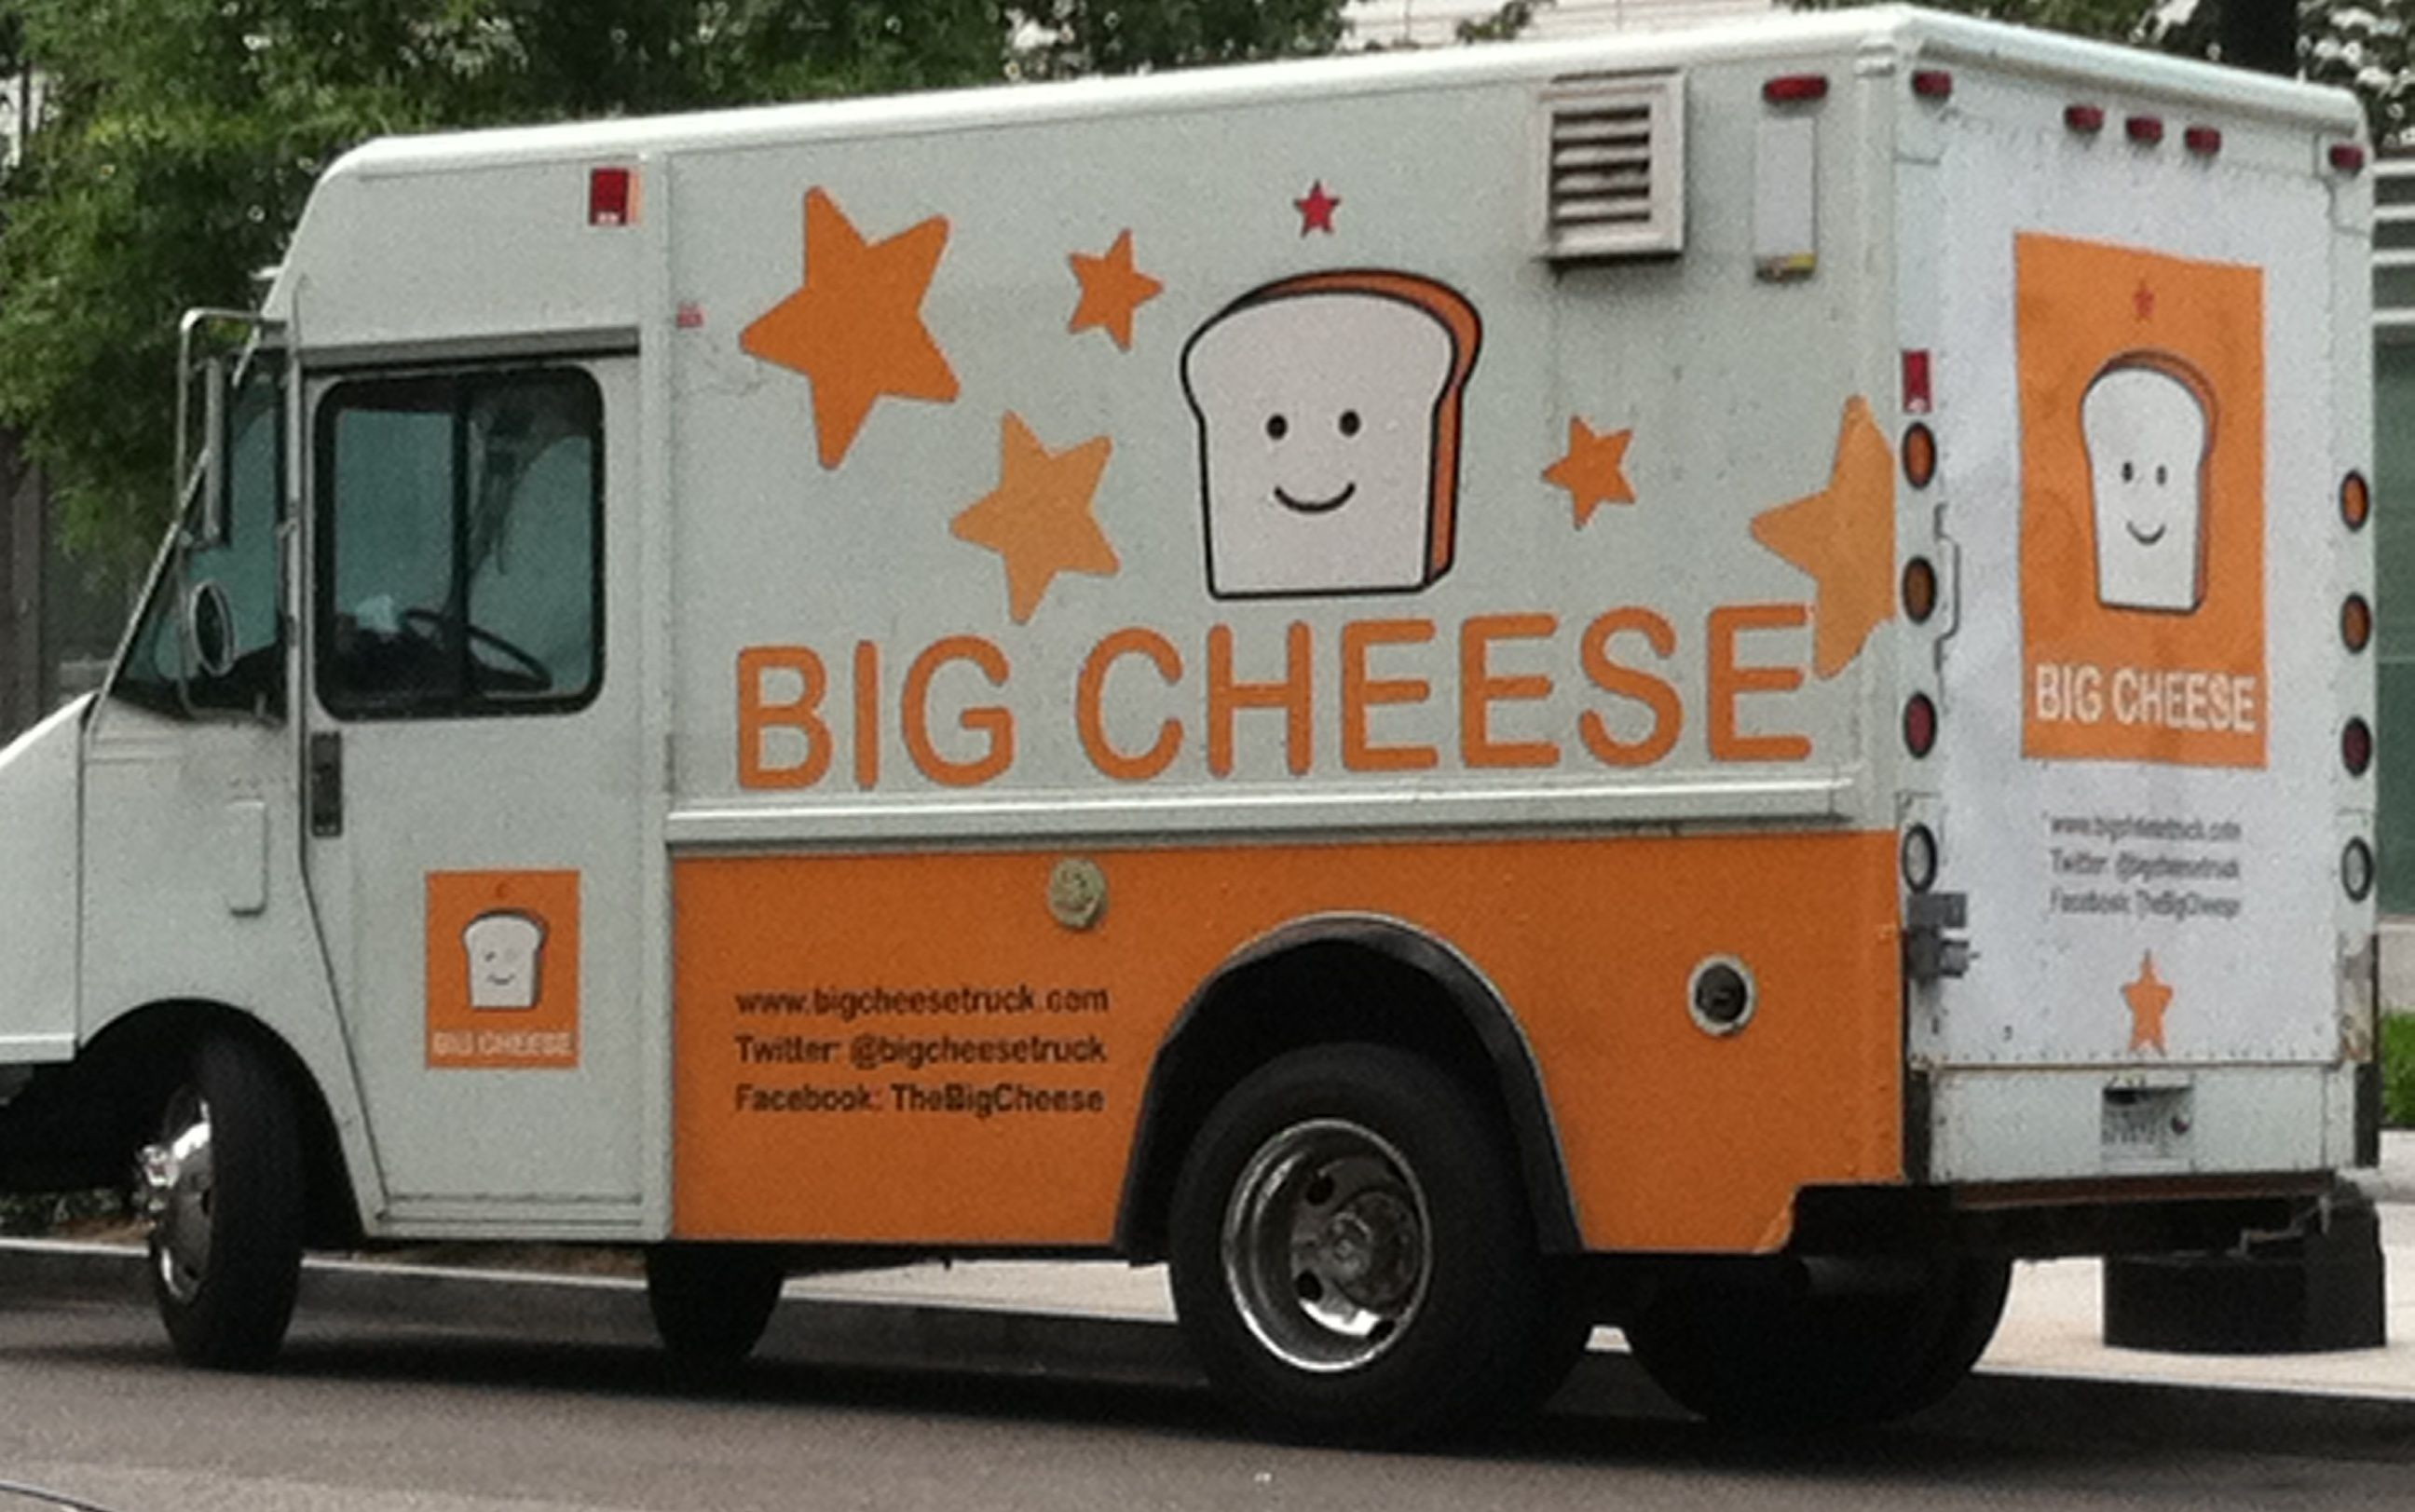 Pin about Food truck, Recreational vehicles and Trucks on